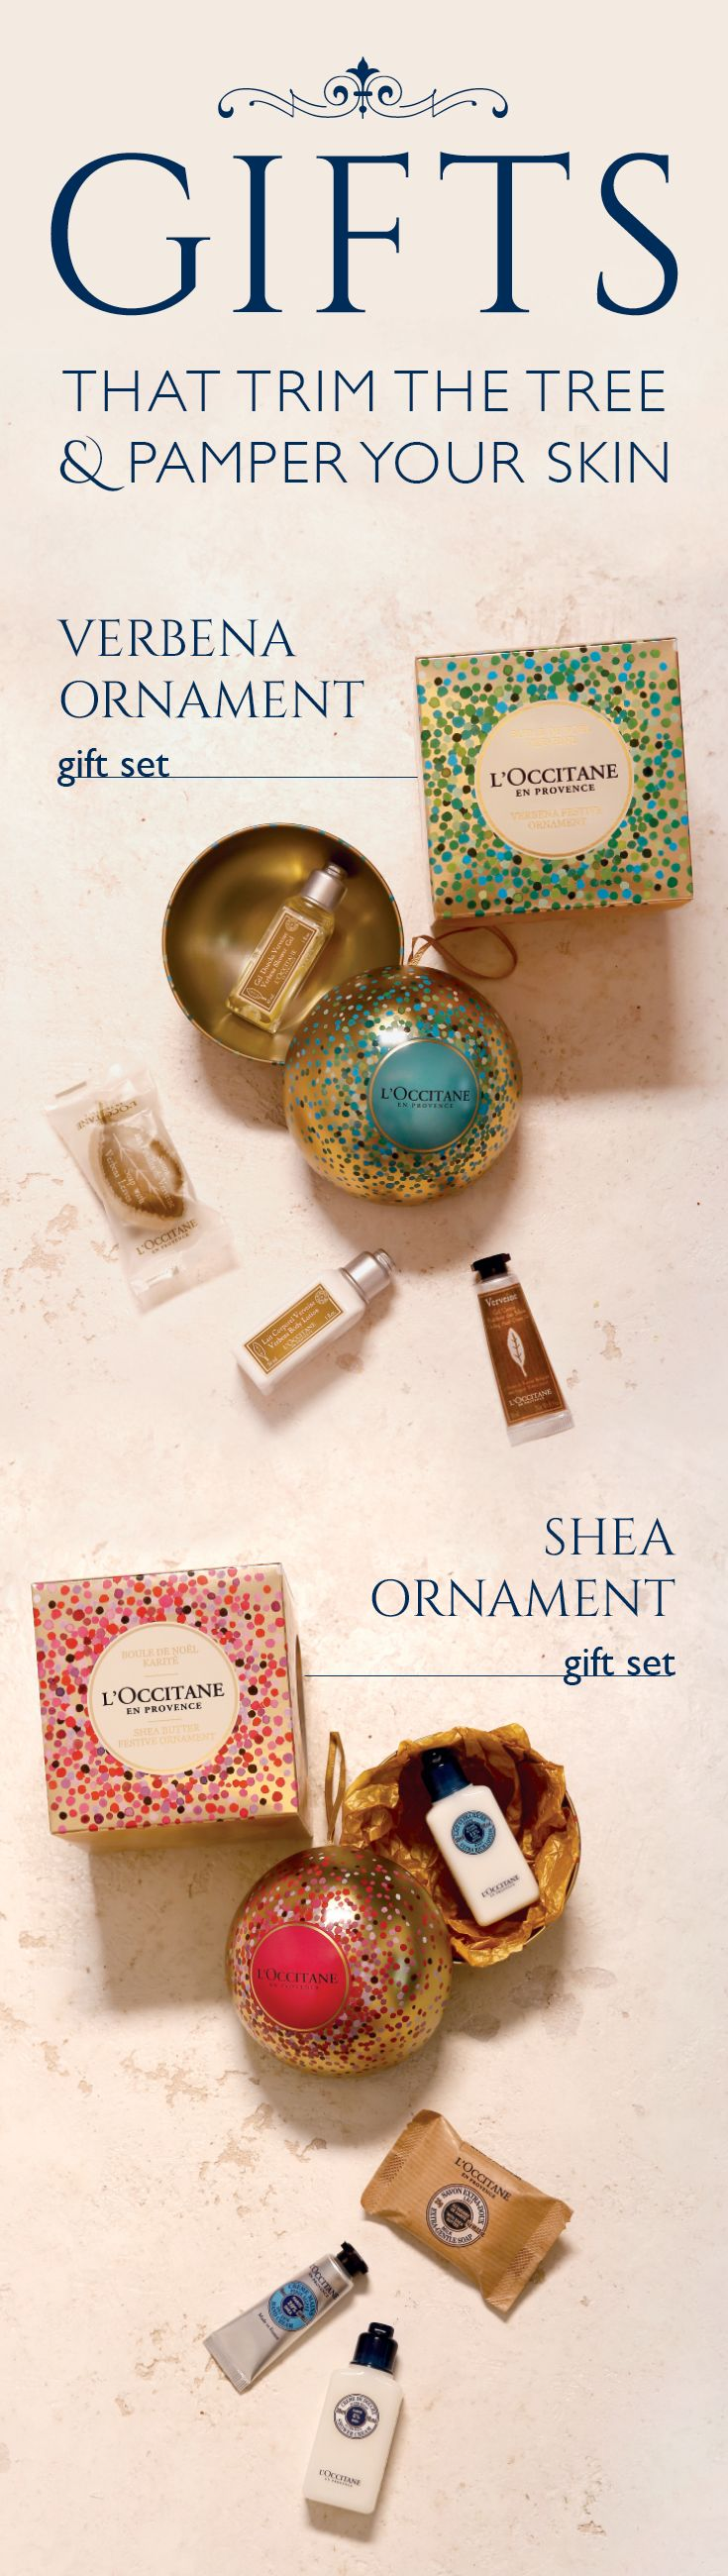 These decorative gifts look as luxurious as the goodies inside feel. It's the perfect treat for a teacher or coworker, and if you're hosting this holiday, these ornaments make great party favors for family and friends! Whether it's the soothing moisture of shea or the vibrant, citrus scent of verbena, they'll love L'Occitane for their skin—and the ornament for their holiday decor, too.